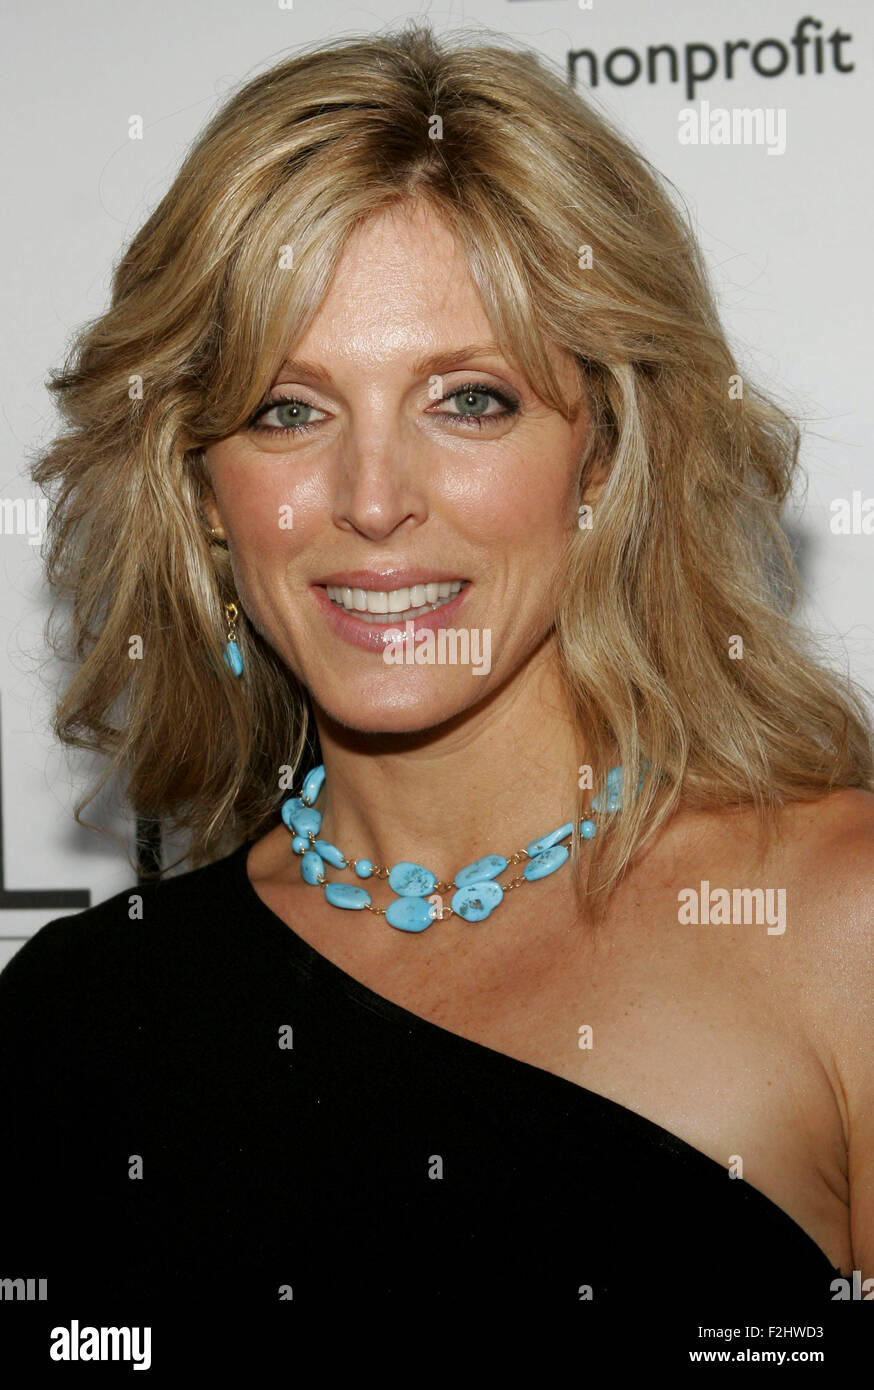 marla maples stock photos amp marla maples stock images alamy